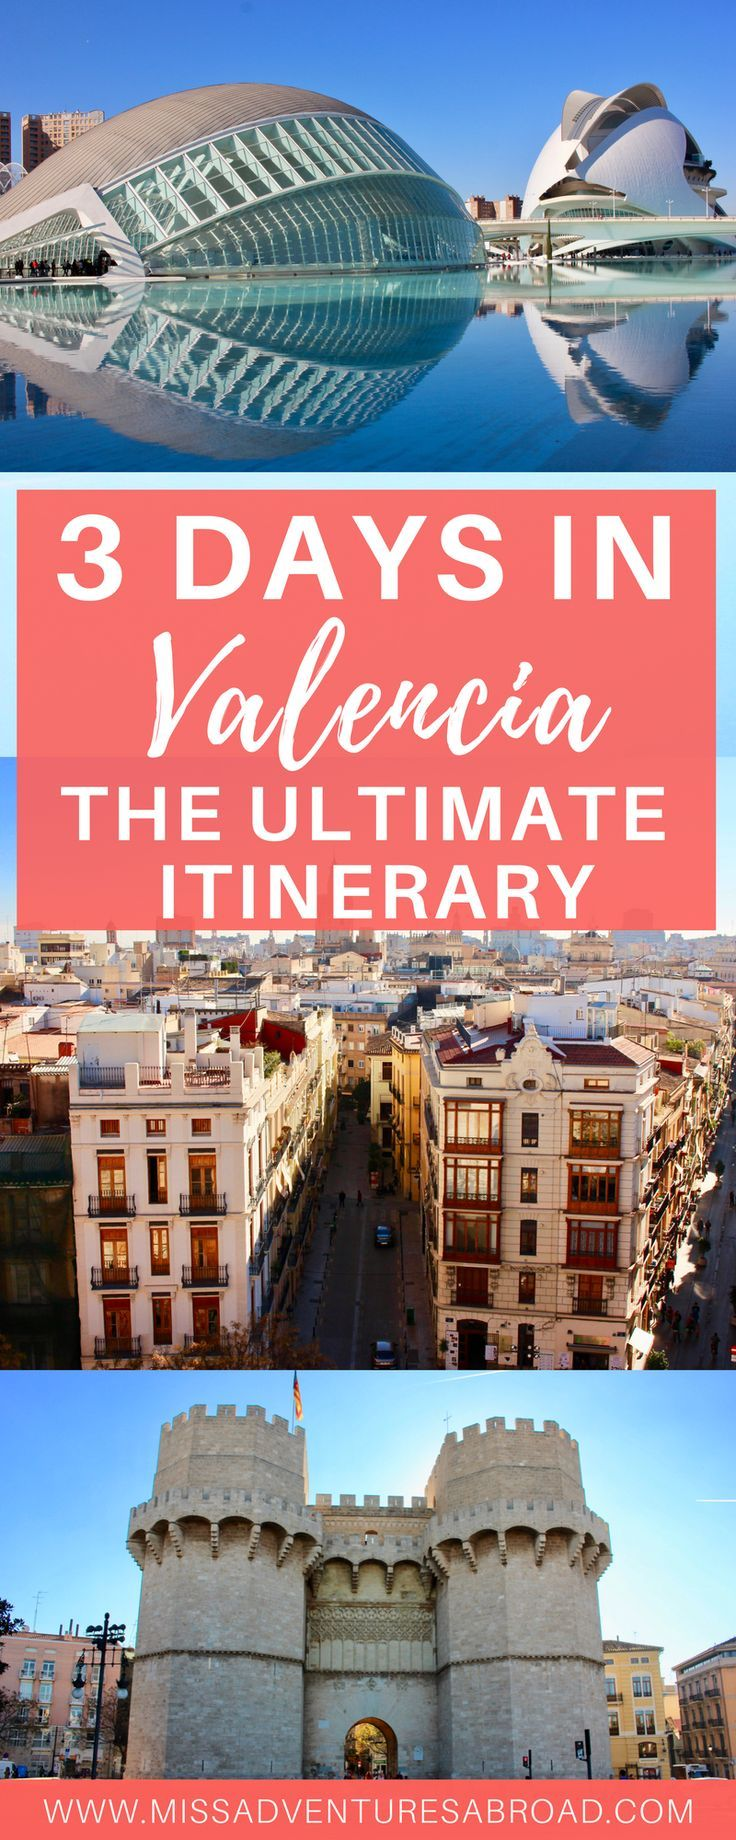 How to Spend 3 Perfect Days In Valencia: The Ultimate Weekend Itinerary · Discover how to spend the perfect weekend in Valencia, Spain with this epic itinerary! Explore the City of Arts and Sciences, visit the city's most historic sites, try some famous Valencian paella, hit the beach, and more! There is something for everyone in this incredible city!